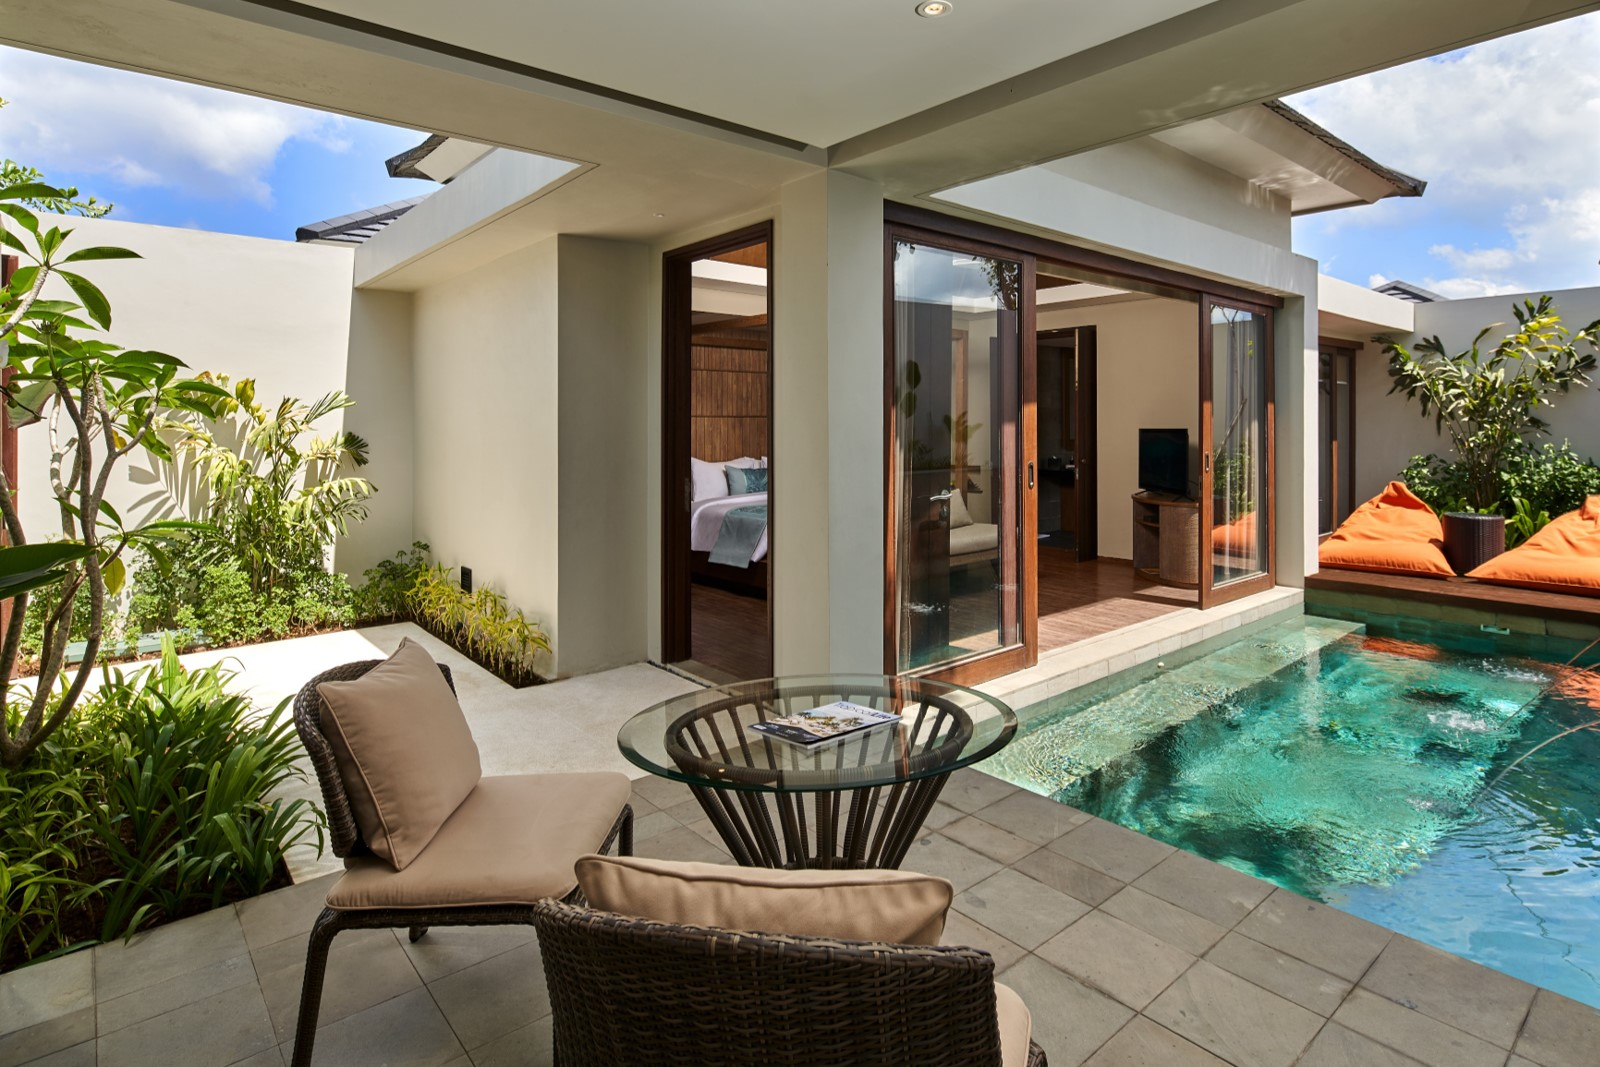 X2 Bali Breakers Resort-Pool Villa Balcony 2